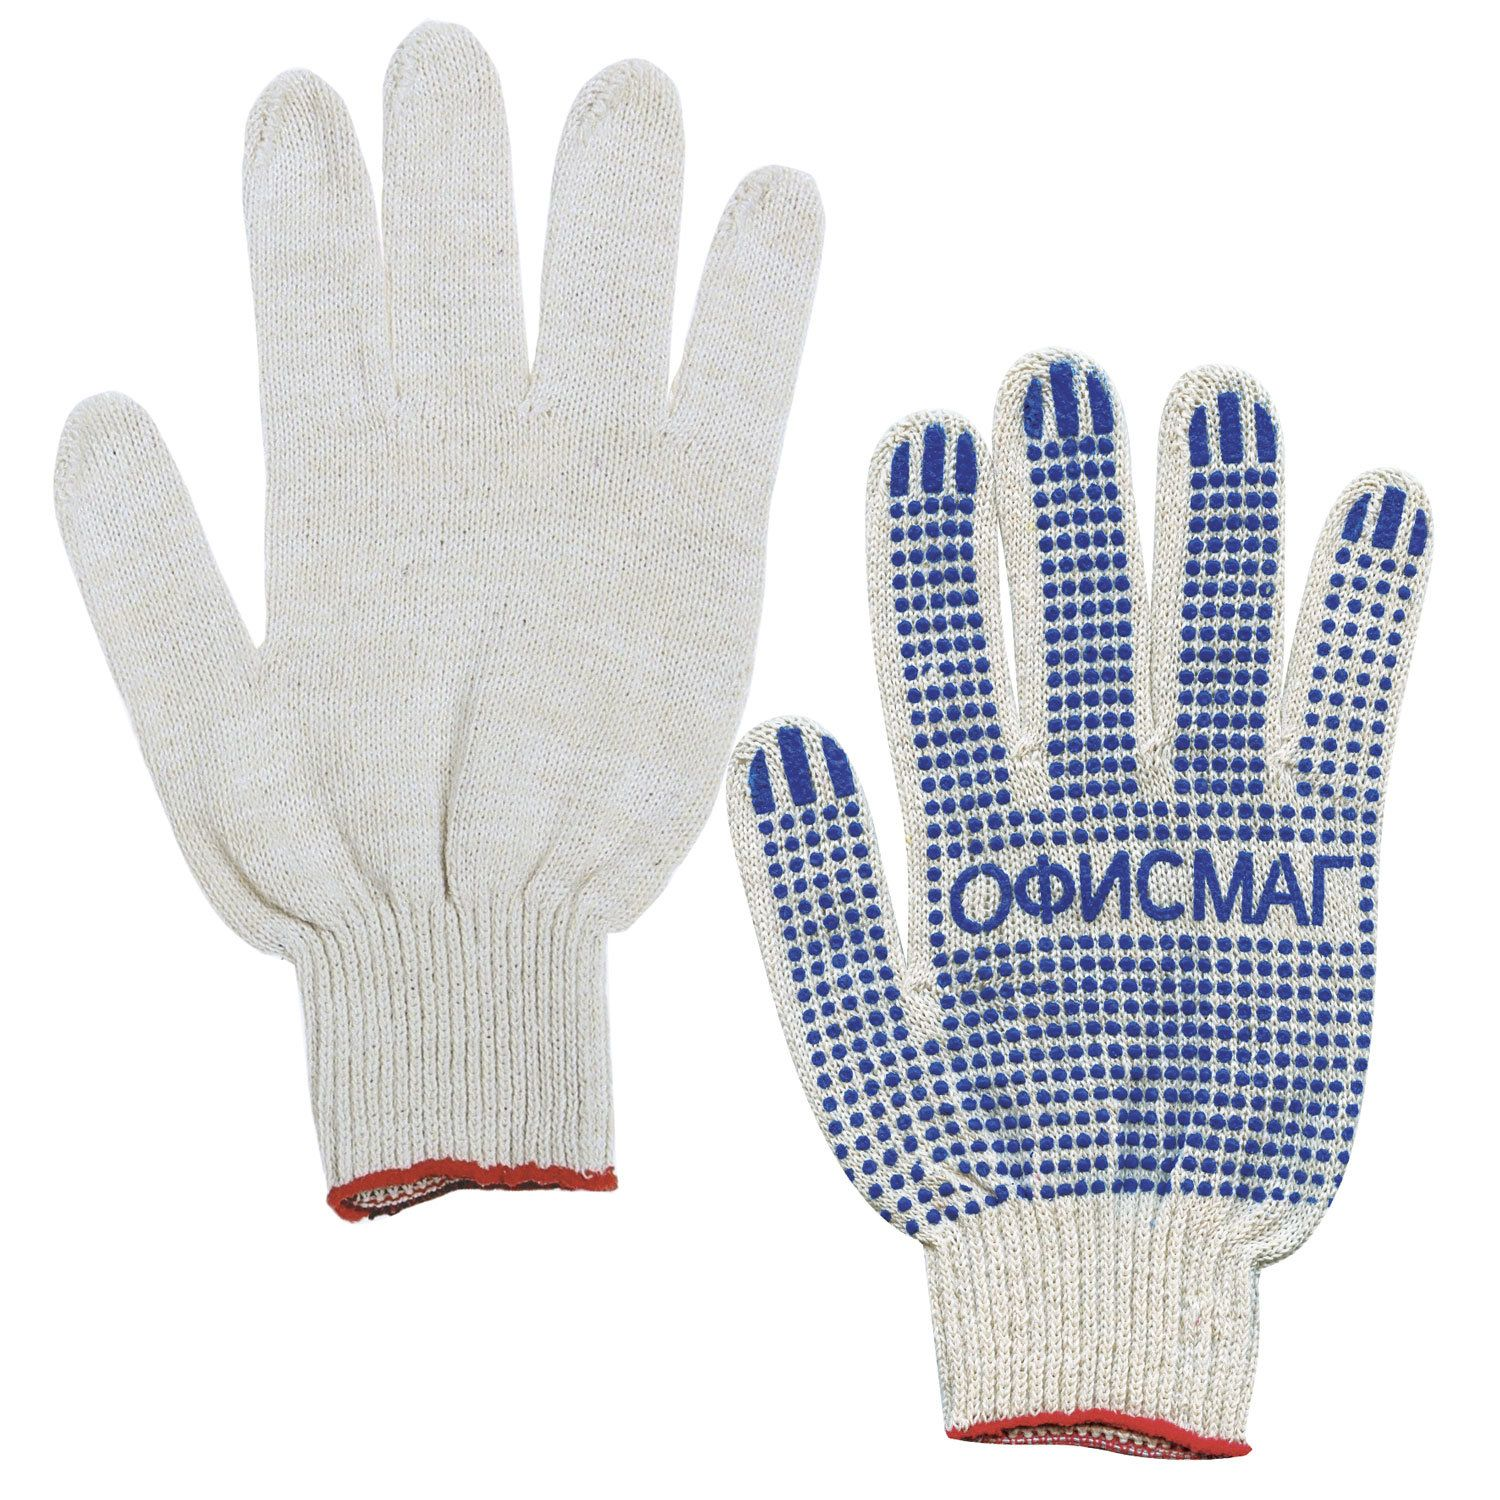 OFFICEMAG / Cotton gloves, SET of 50 PAIRS, grade 10, 32-34 g, 83 tex, PVC dot, WHITE